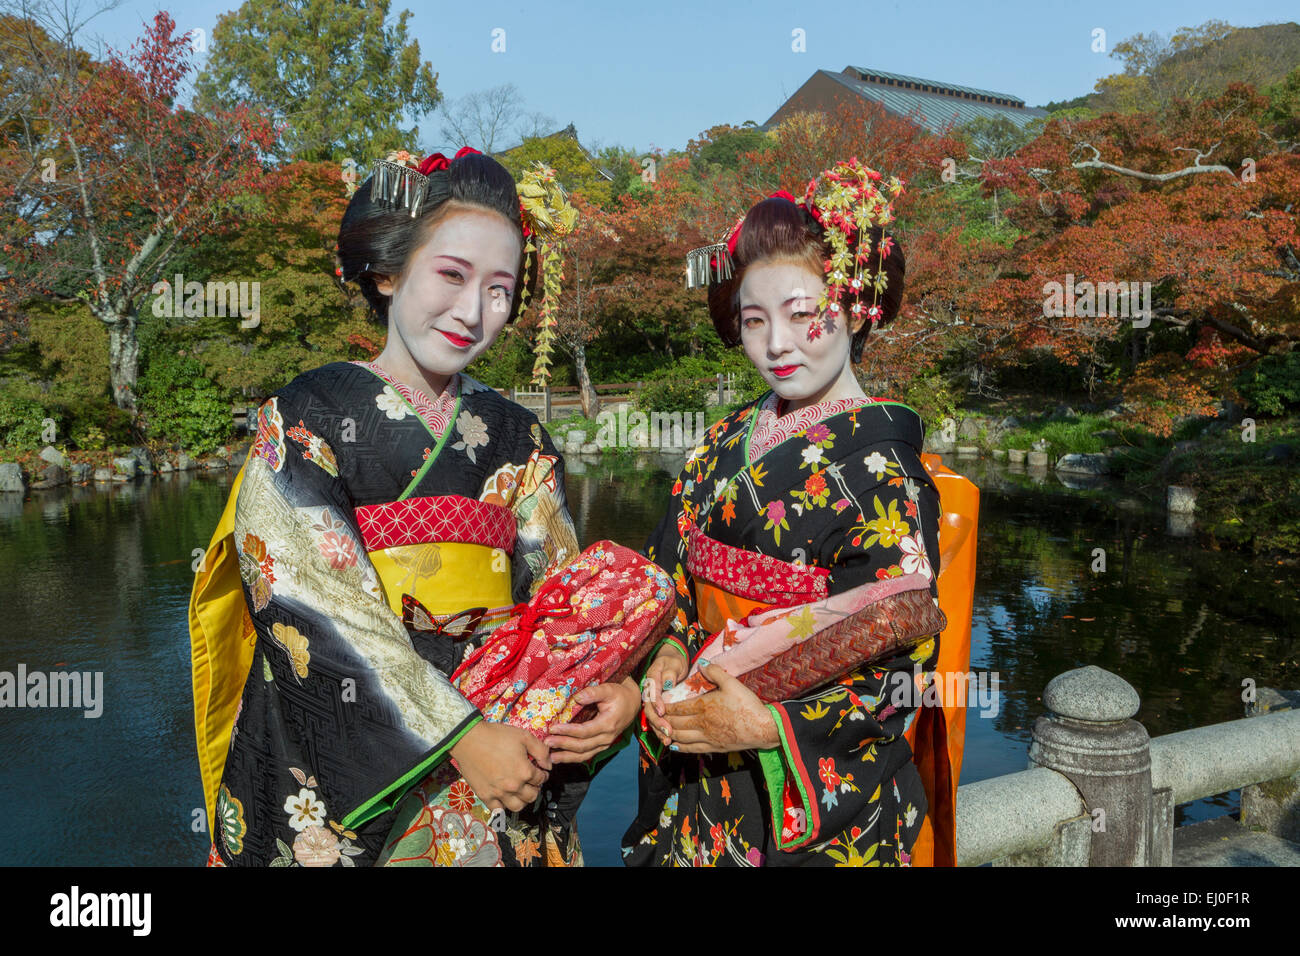 Japan, Asia, Kyoto, Outdoor, colourful, costume, geishas, no model-release, girls, Japanese, kimono, make up, traditional - Stock Image